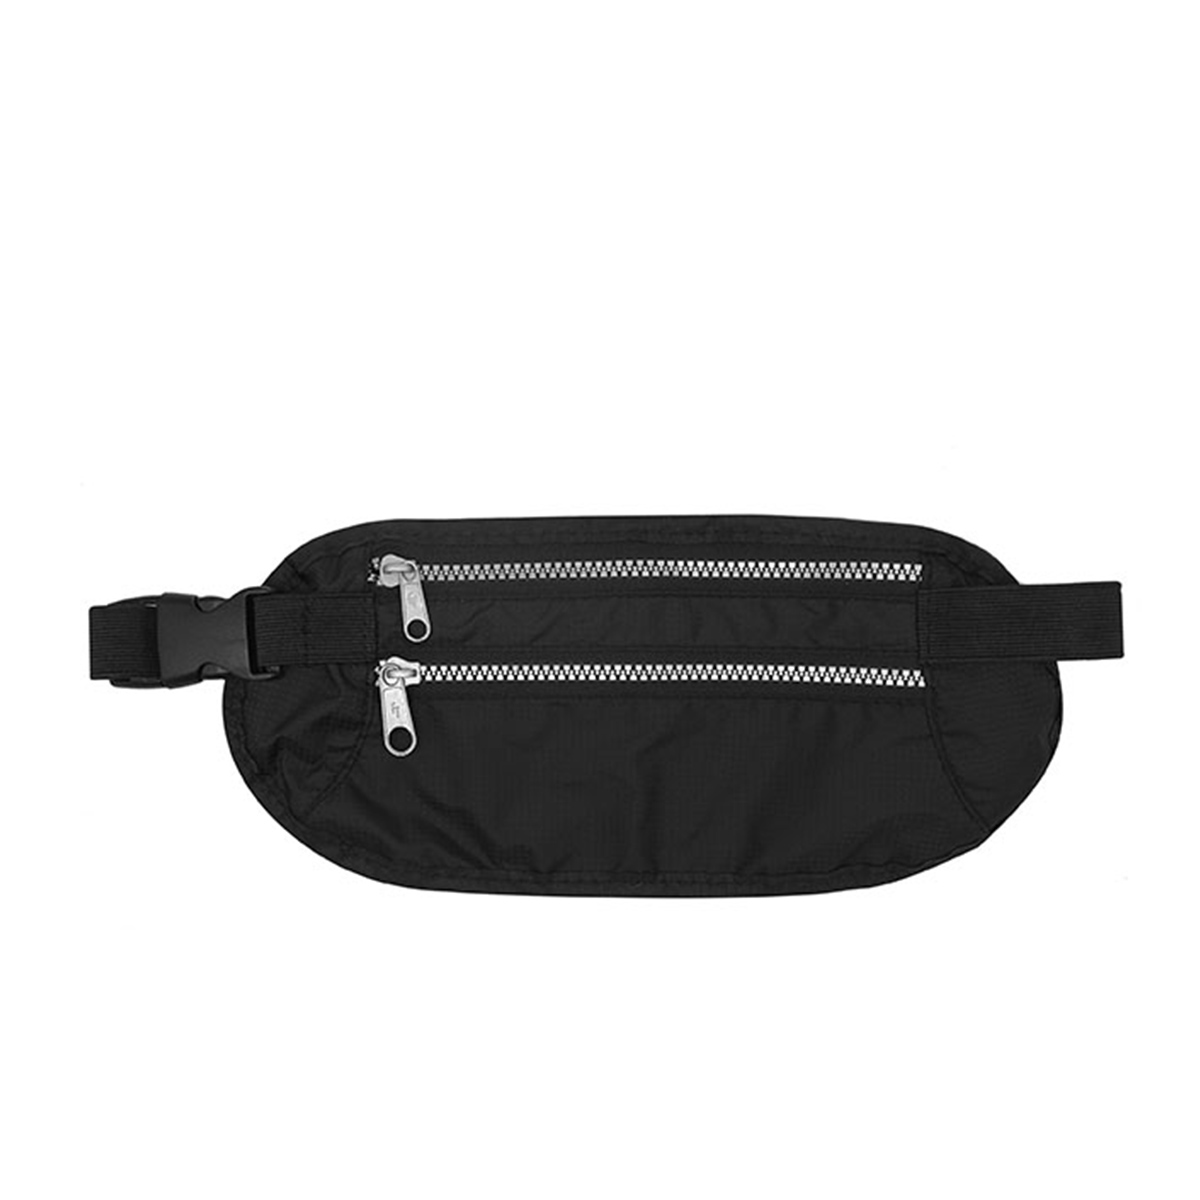 Waist Bag-Fast Travel